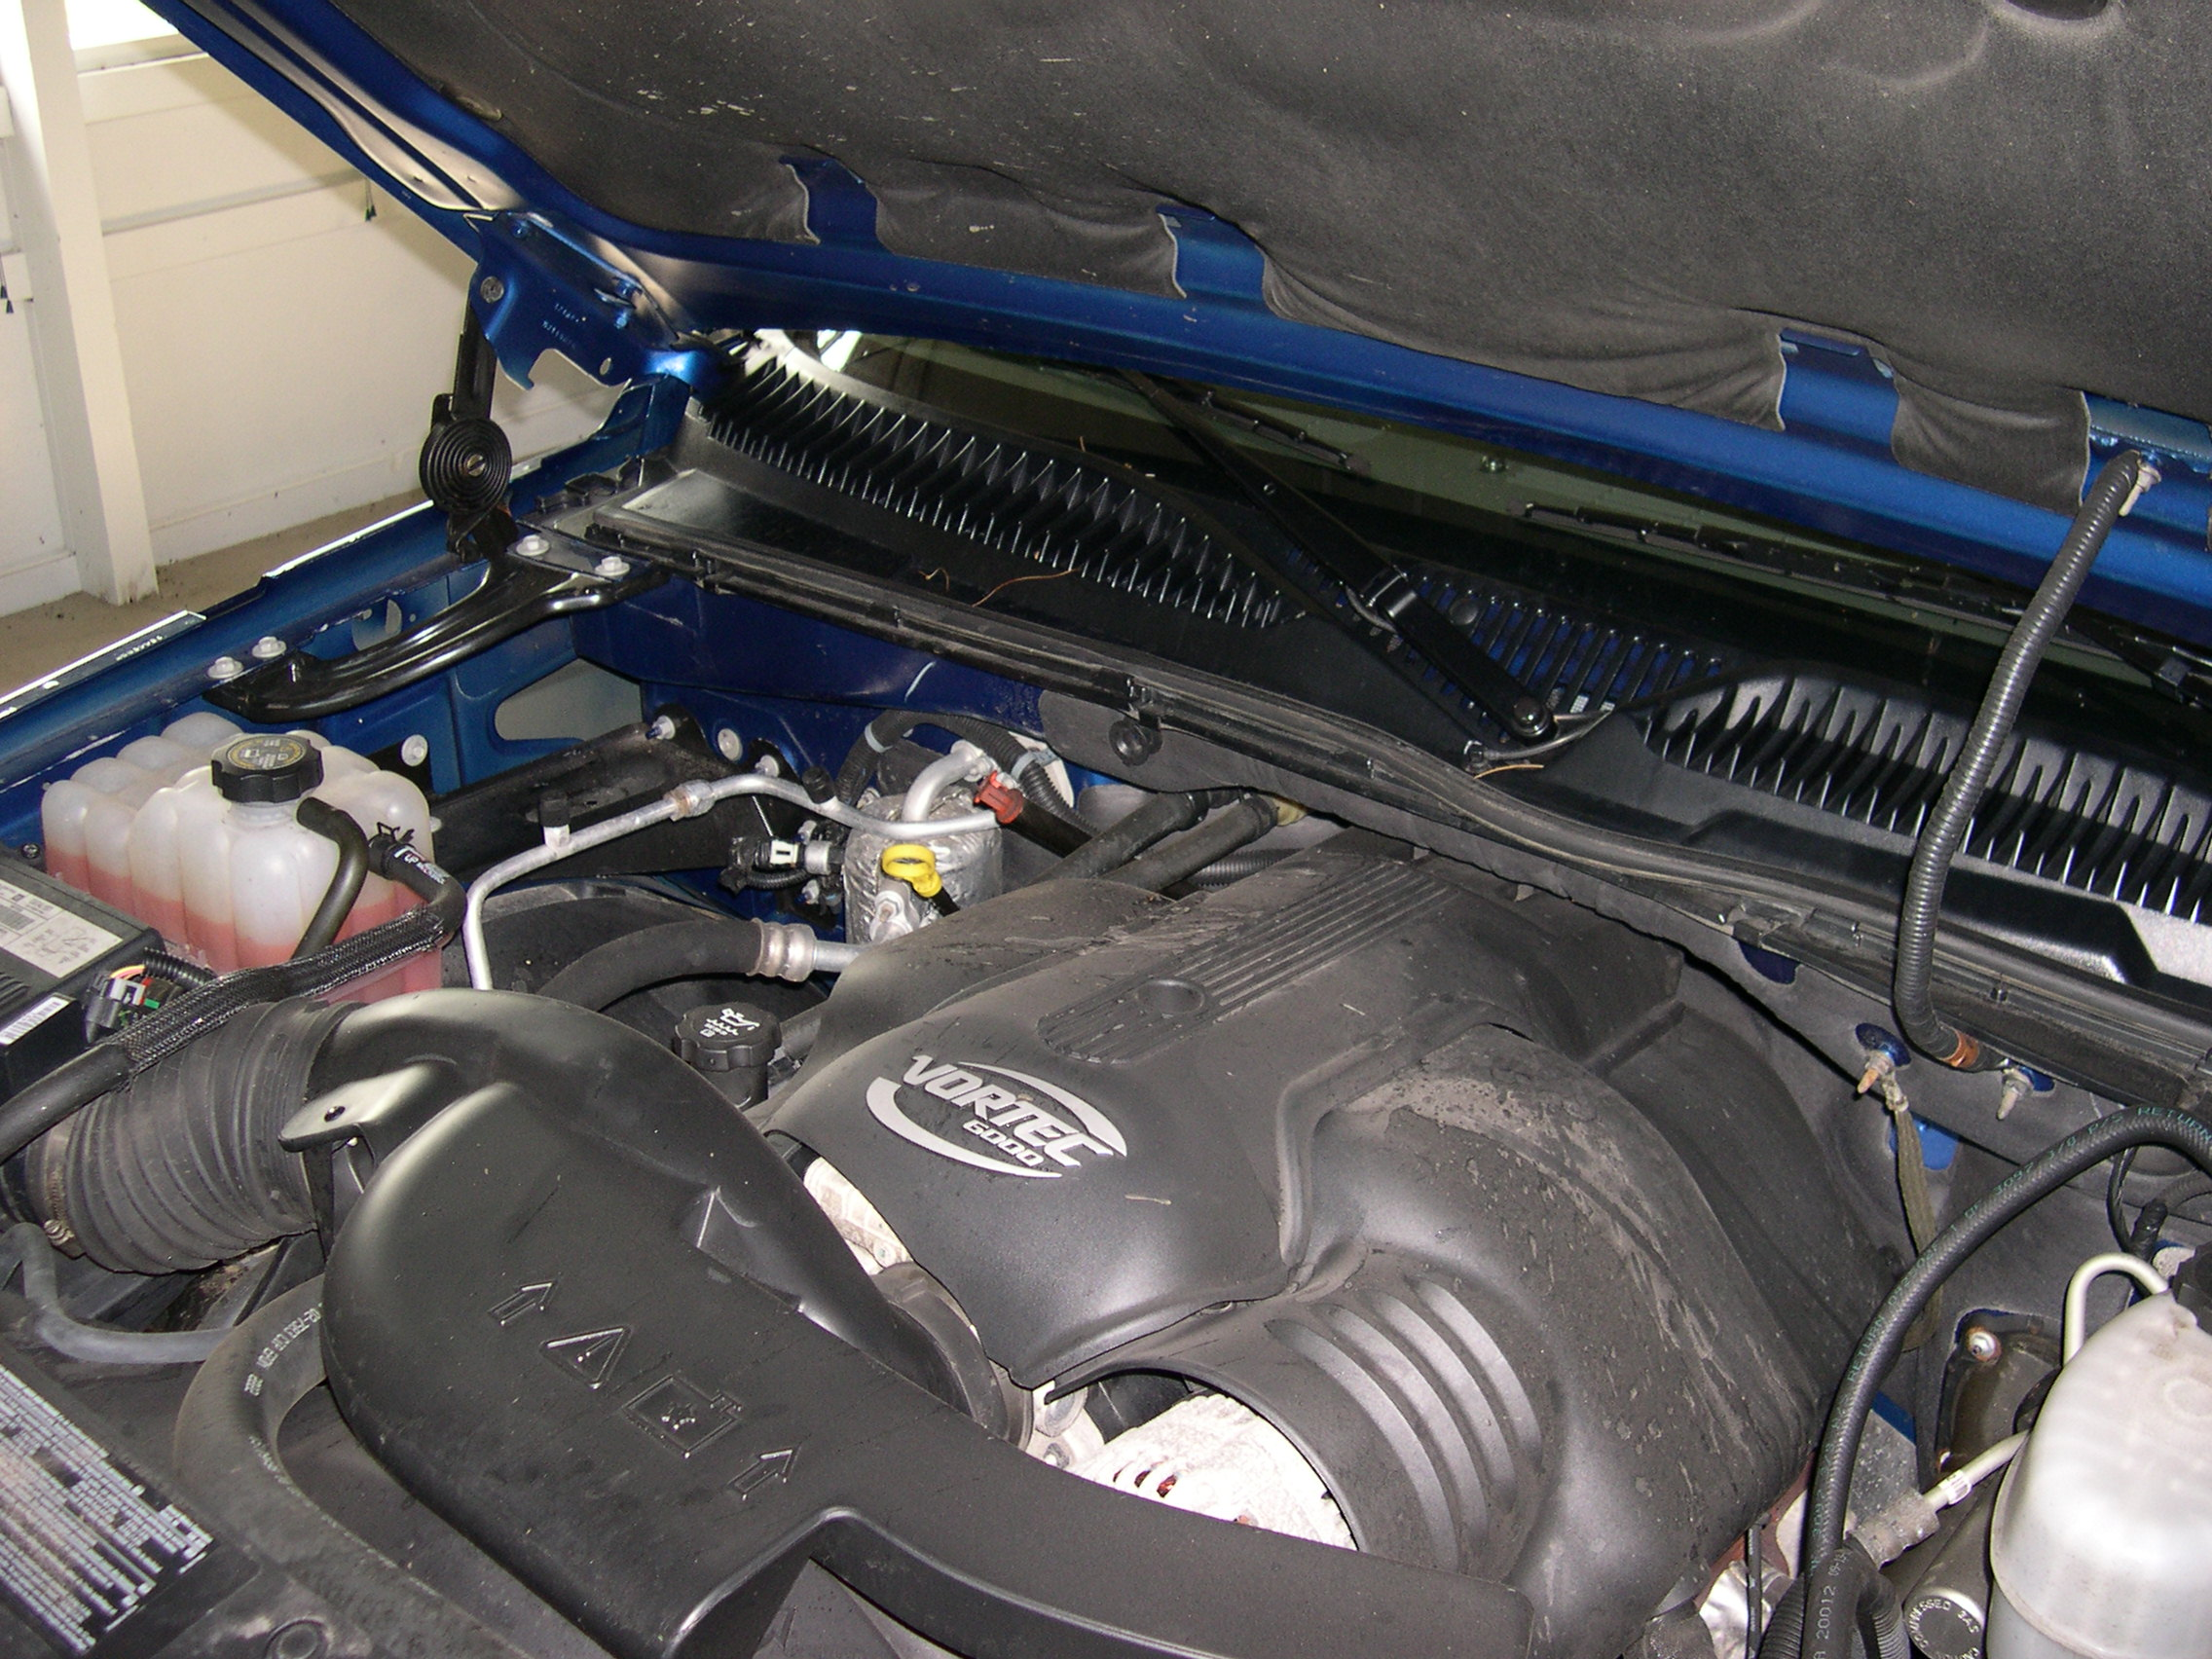 Cadillac Escalade EXT engine #1